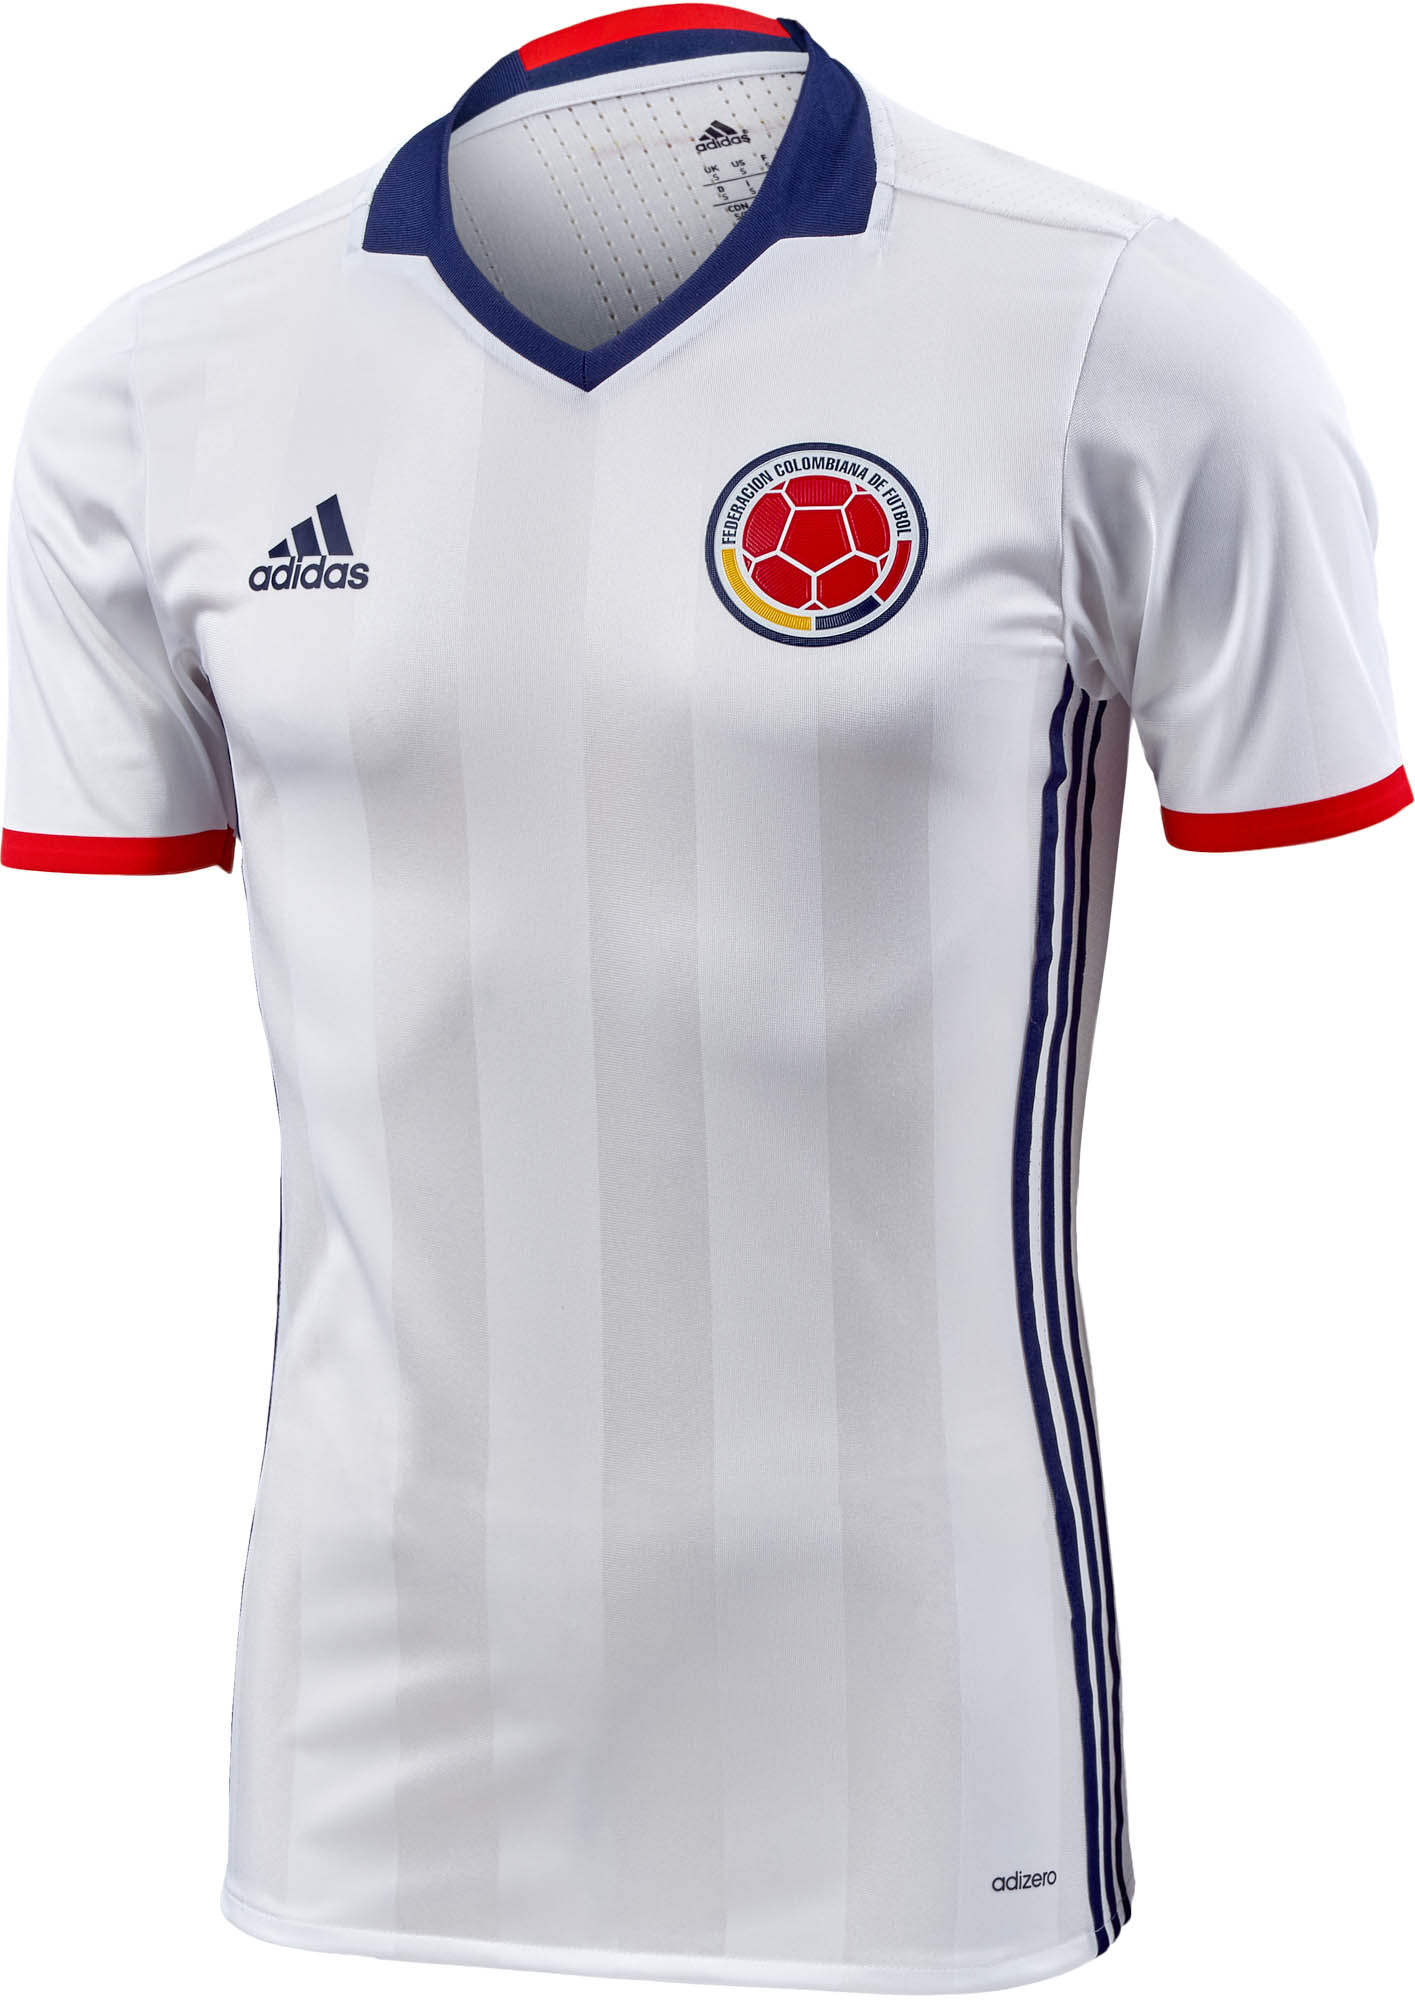 adidas Colombia Authentic Home Jersey - 2016 Colombia Jerseys - photo#24